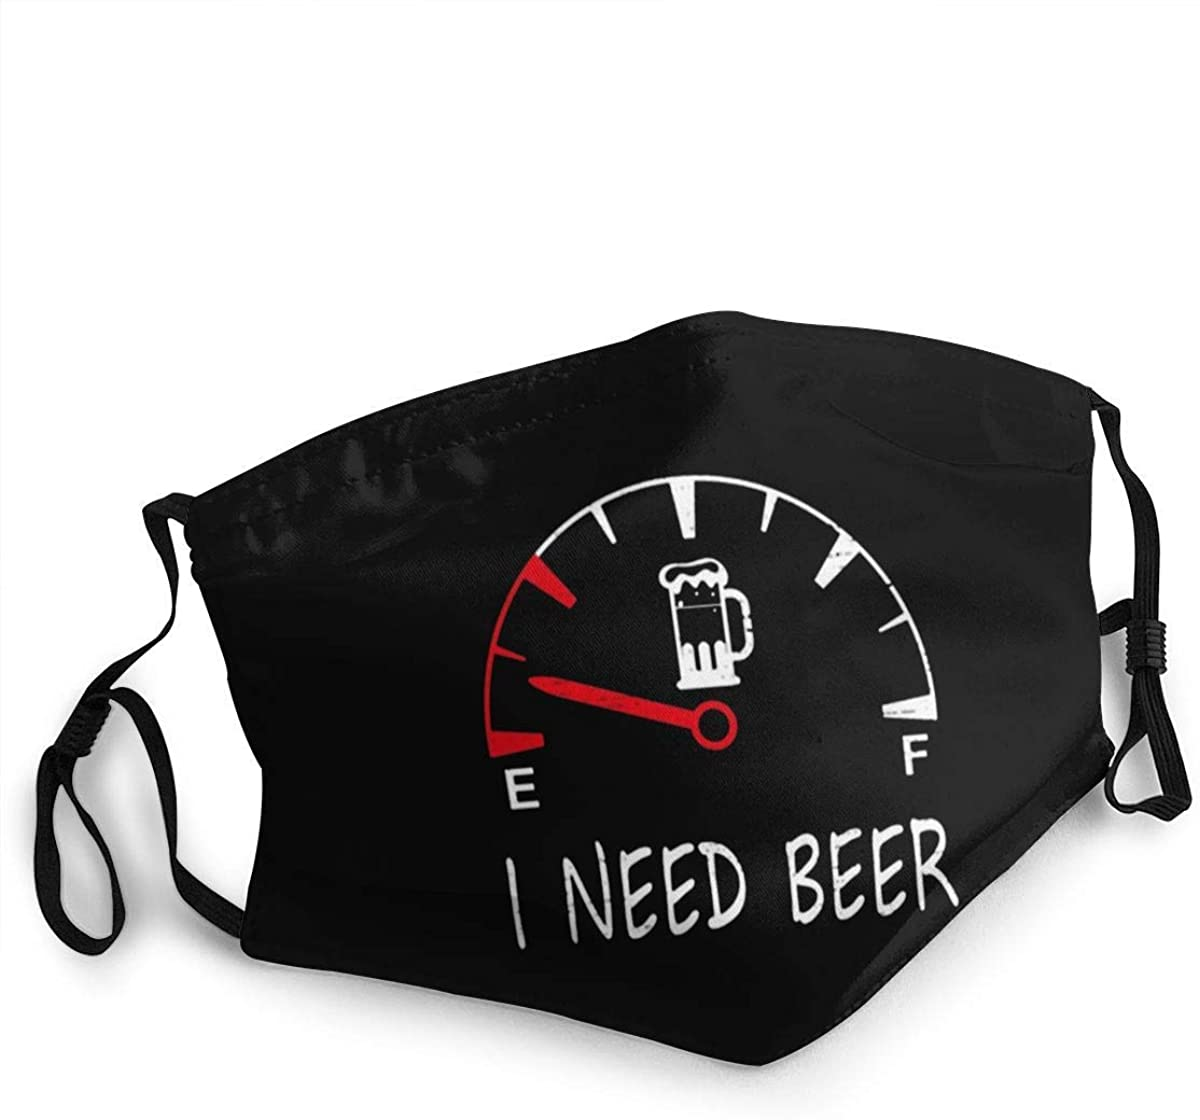 Washable Reusable Face Mask Cover Beer Drinking I Need A Beer Meter Dust Cover Sports Face Cover Bandana for Adults and Kids, Made In USA